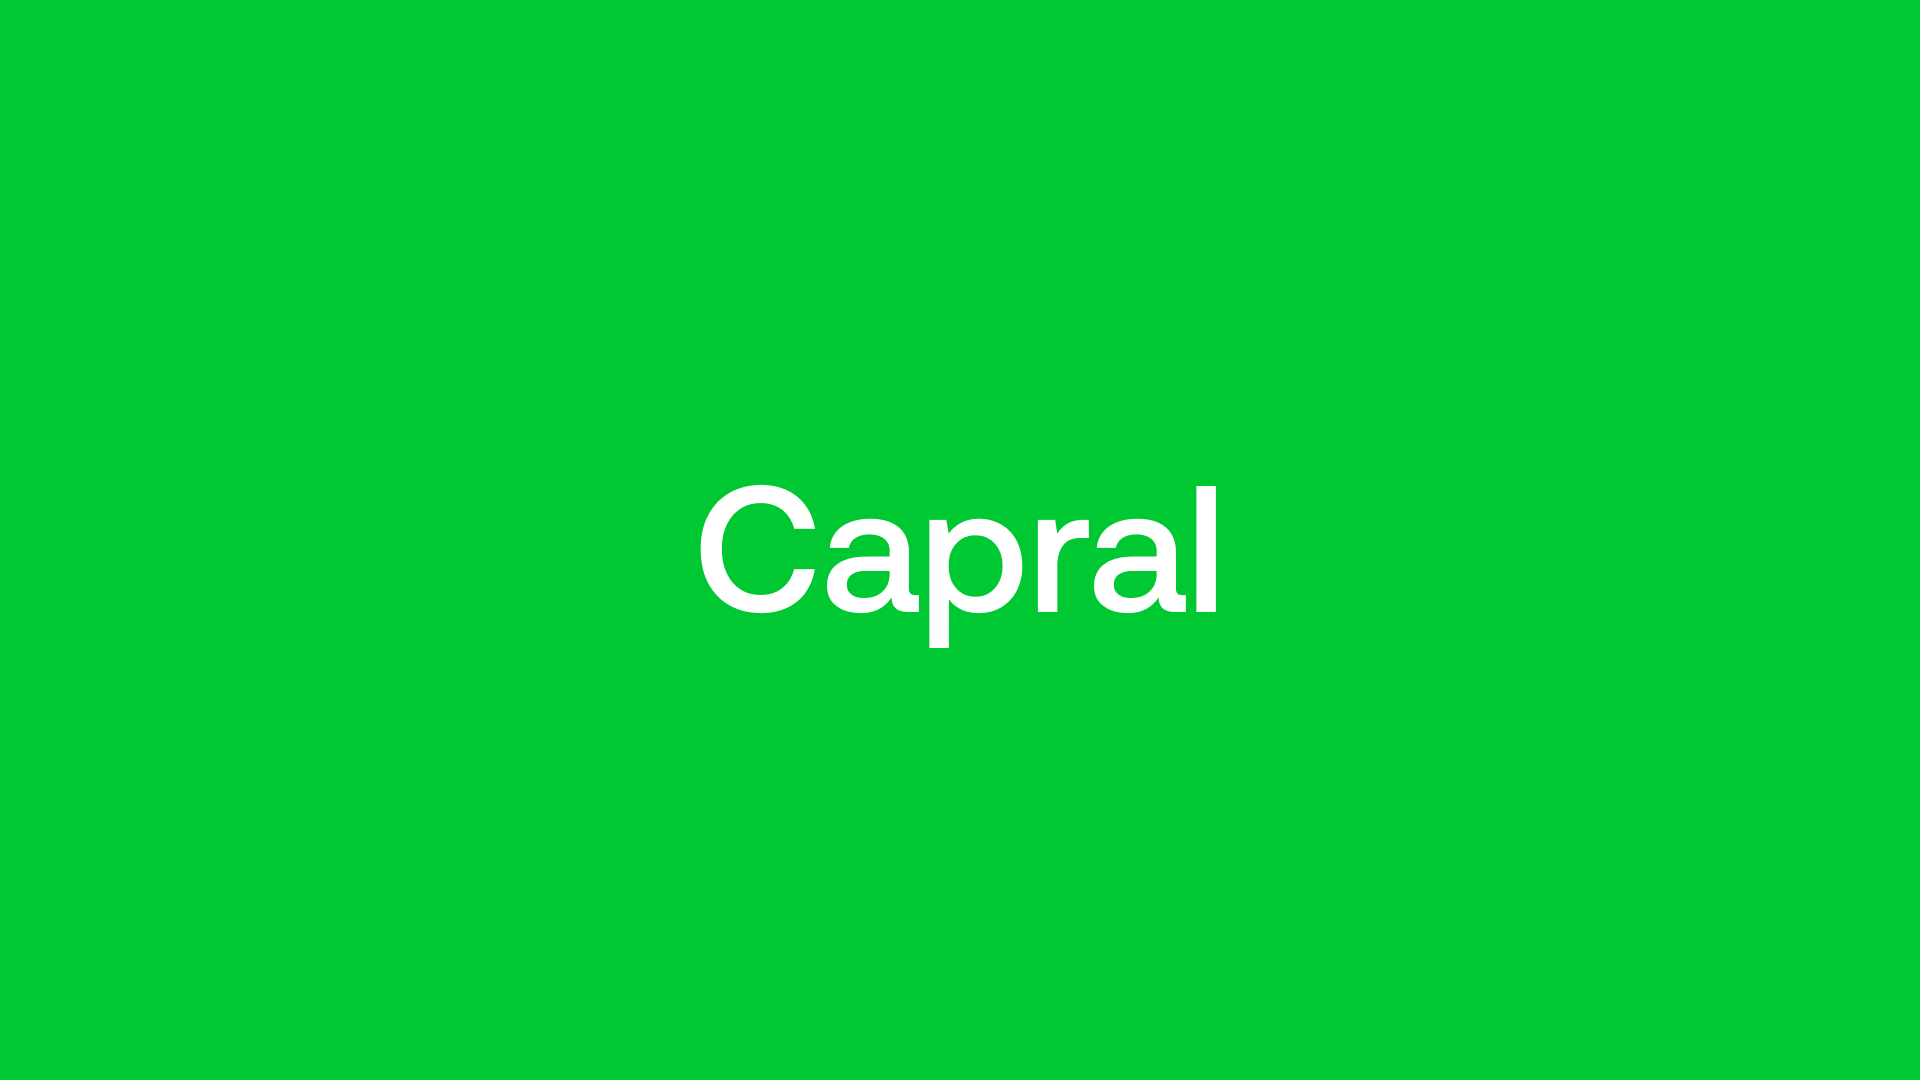 Capral (CAA) - Property Boom Opens the Door for Expansion & M&A